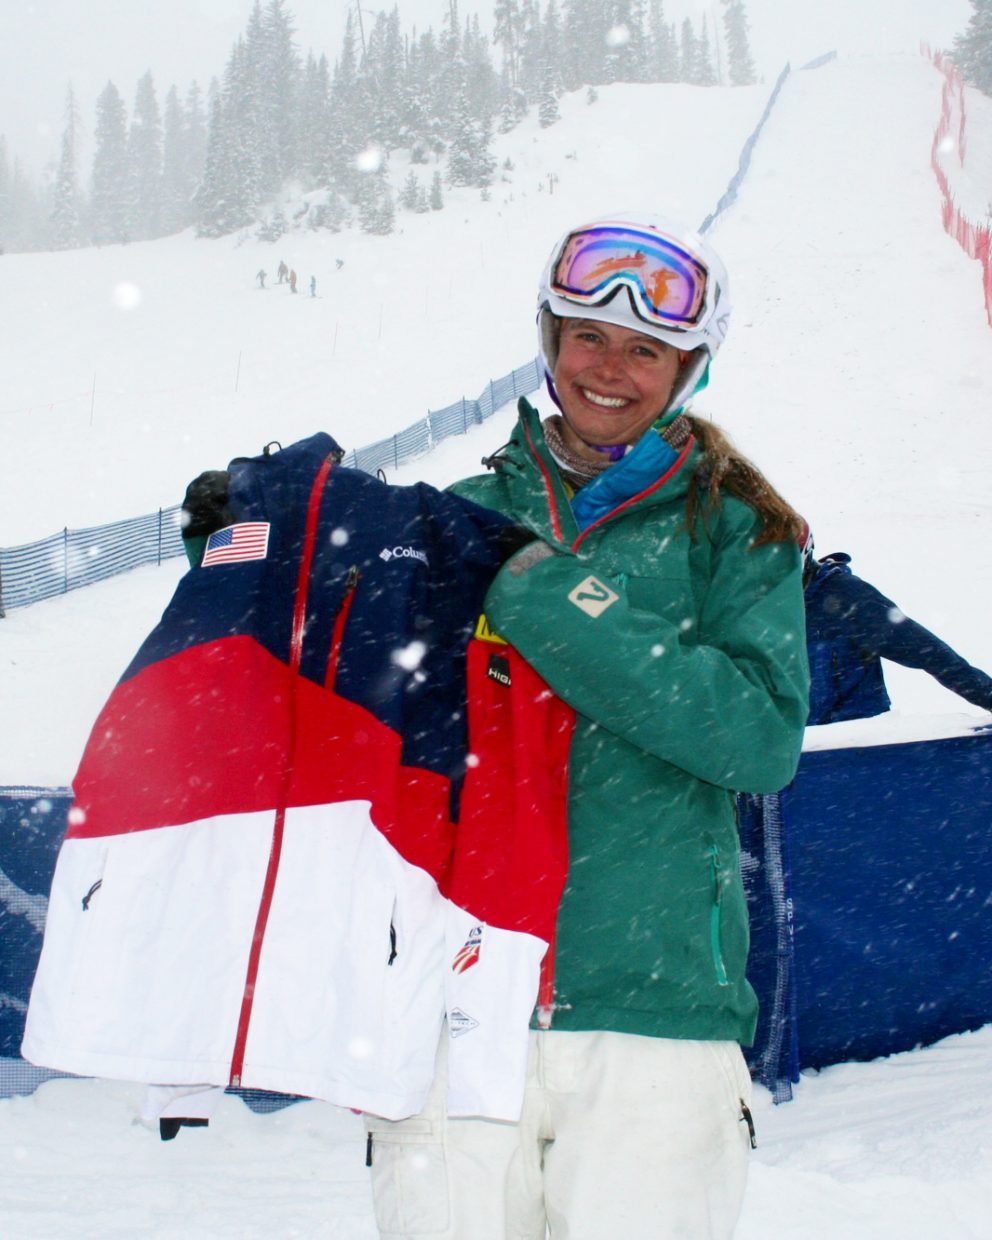 Lane Stoltzner shows off her U.S. Ski Team jacket she earned by earning starts in next month's World Cup skiing events in the United States. Stoltzner has been on the team's development squad for four years and hopes to move up to the full team soon.